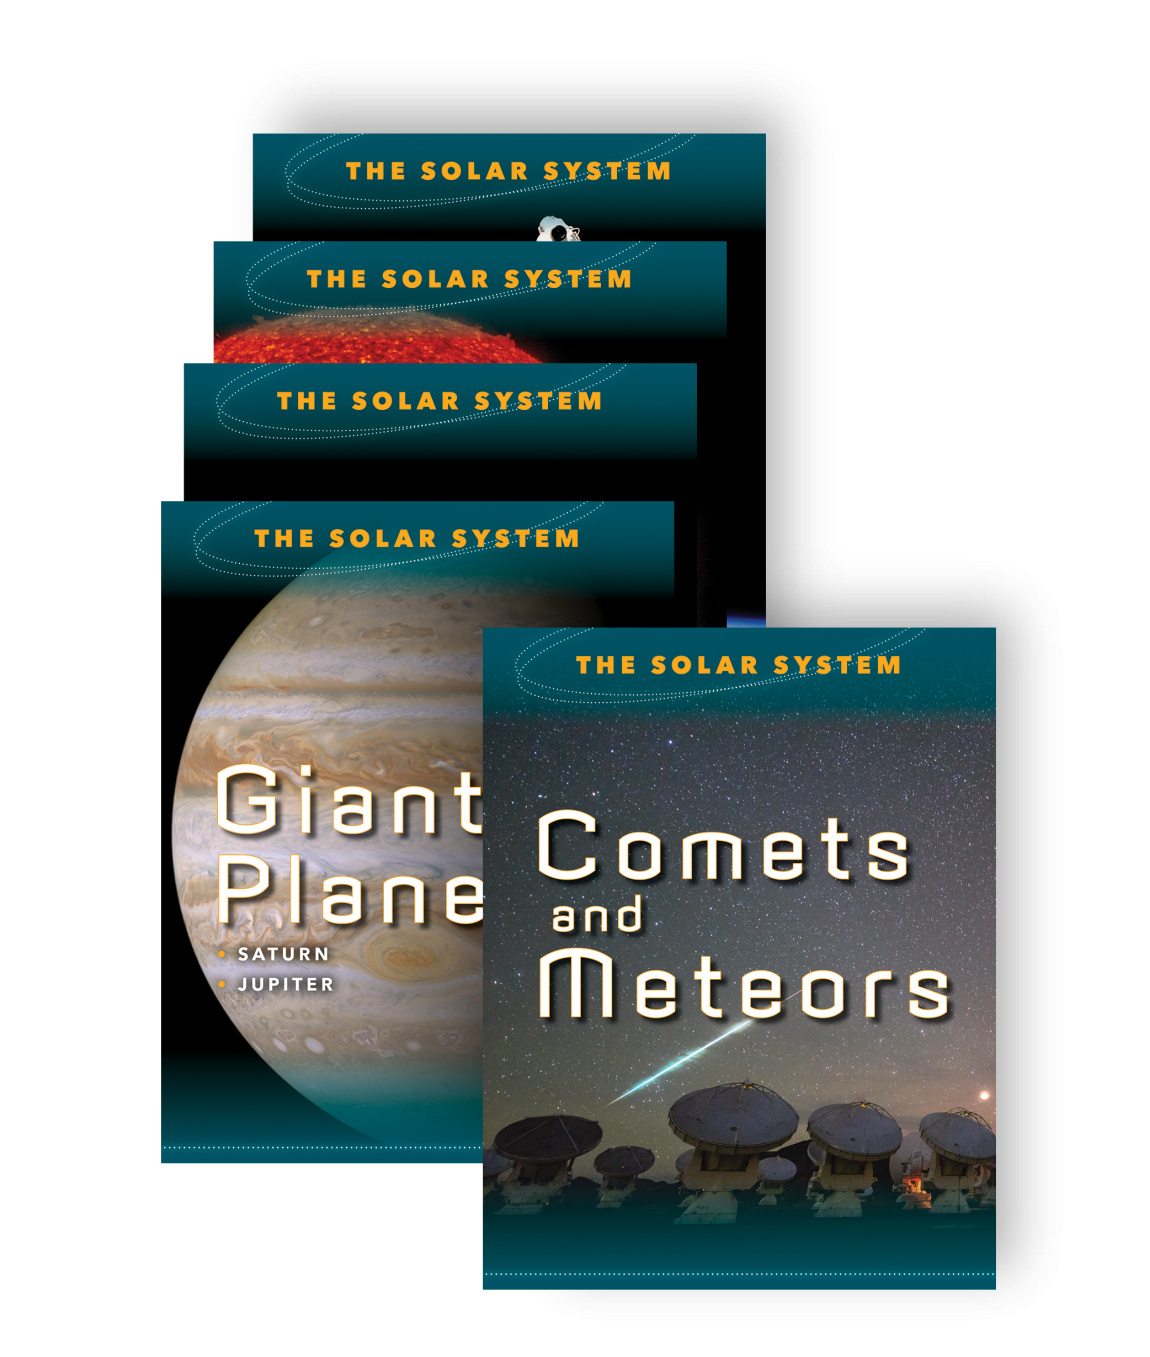 the-solar-system-01.png